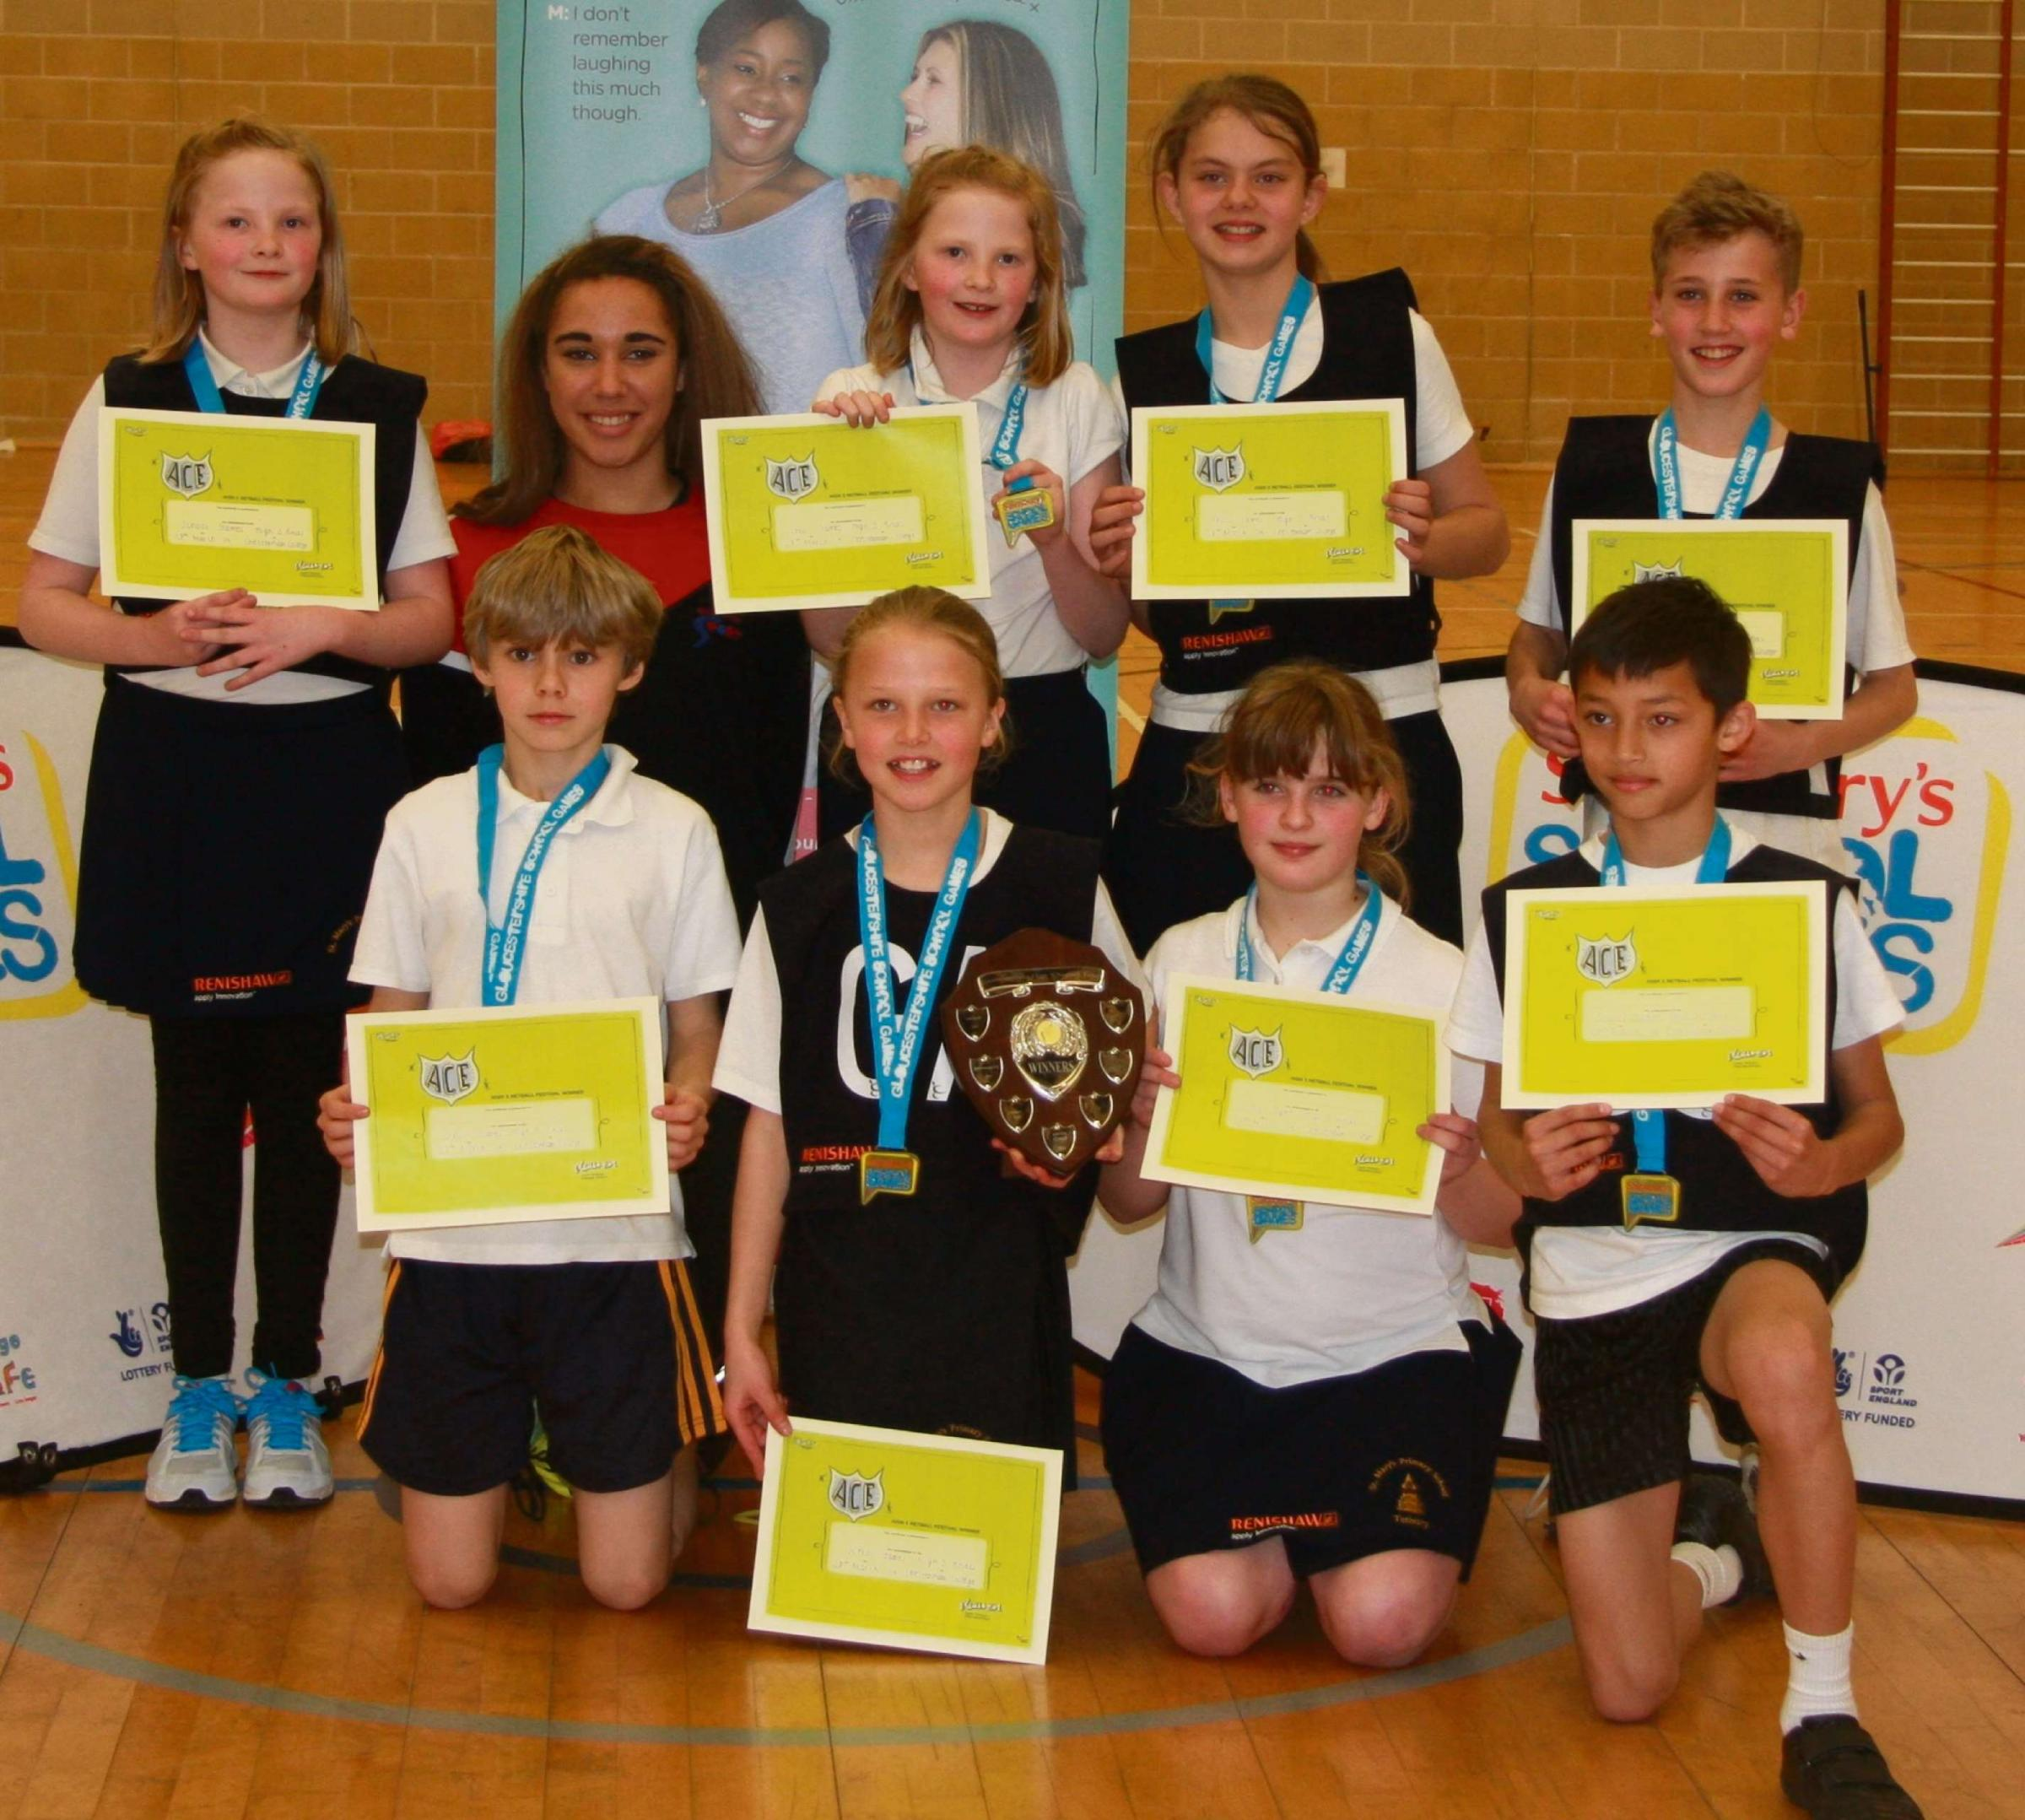 St Mary's School of Tetbury – county netball champions